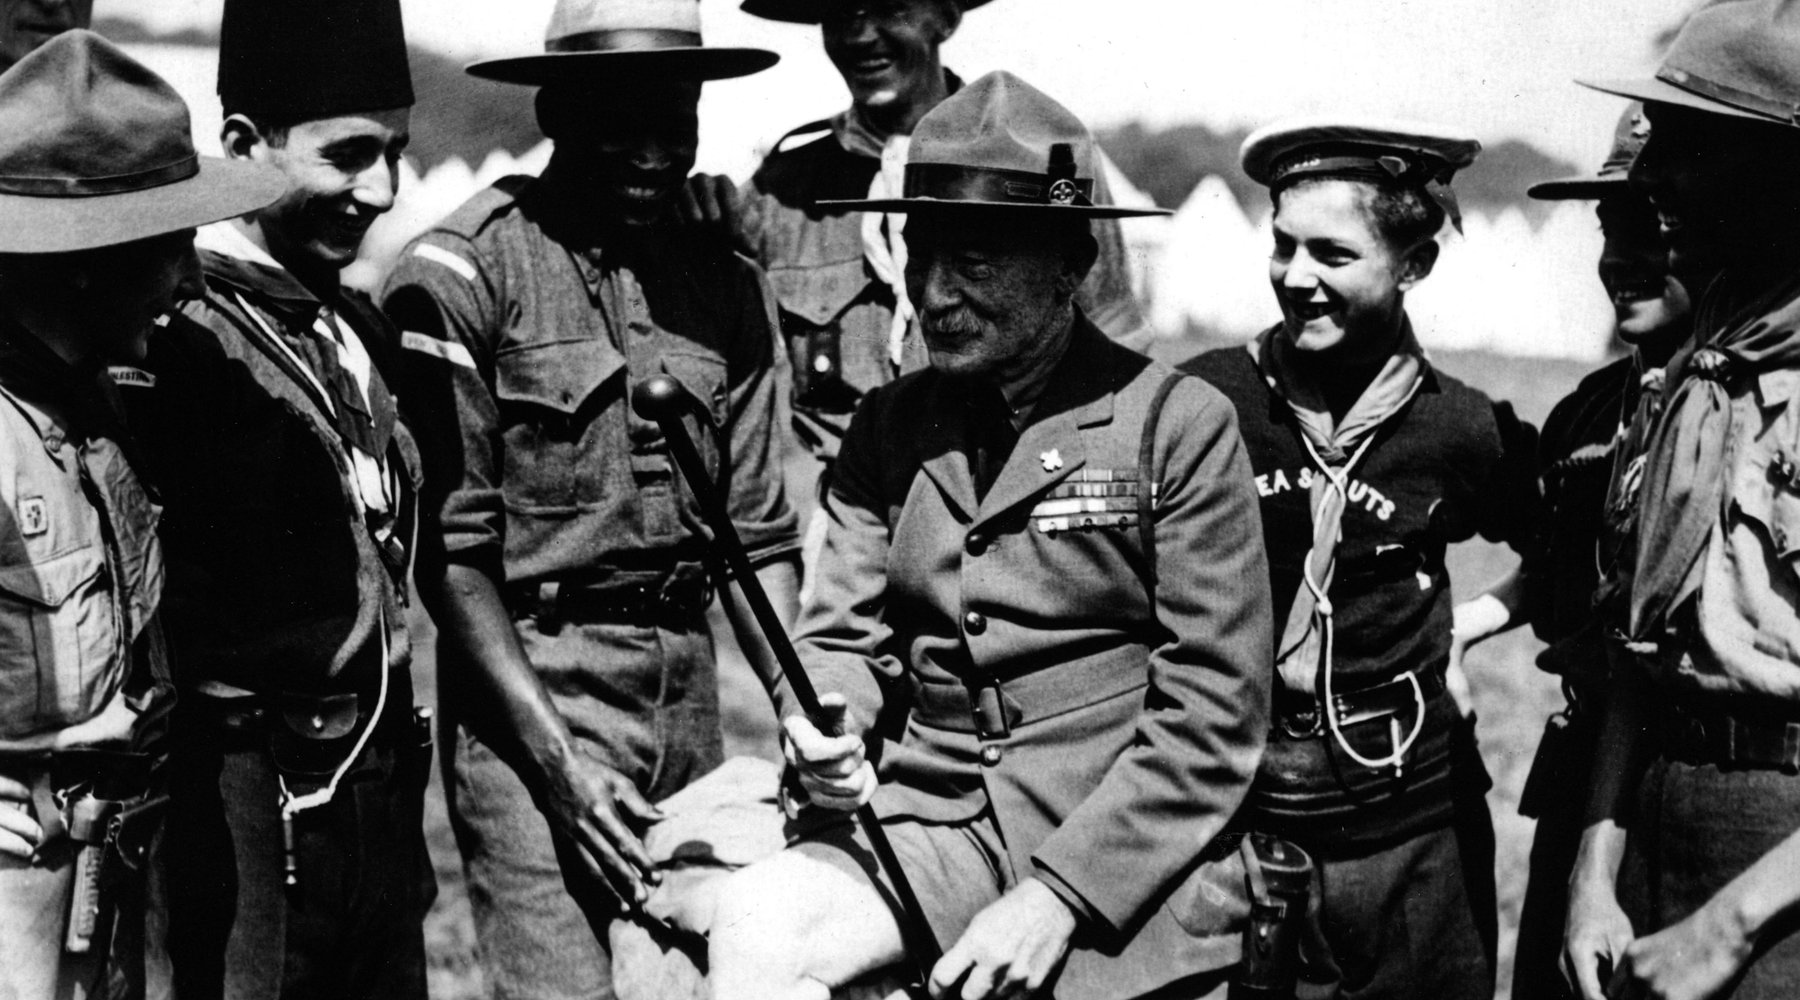 Robert Baden-Powell surrounded by Scouts